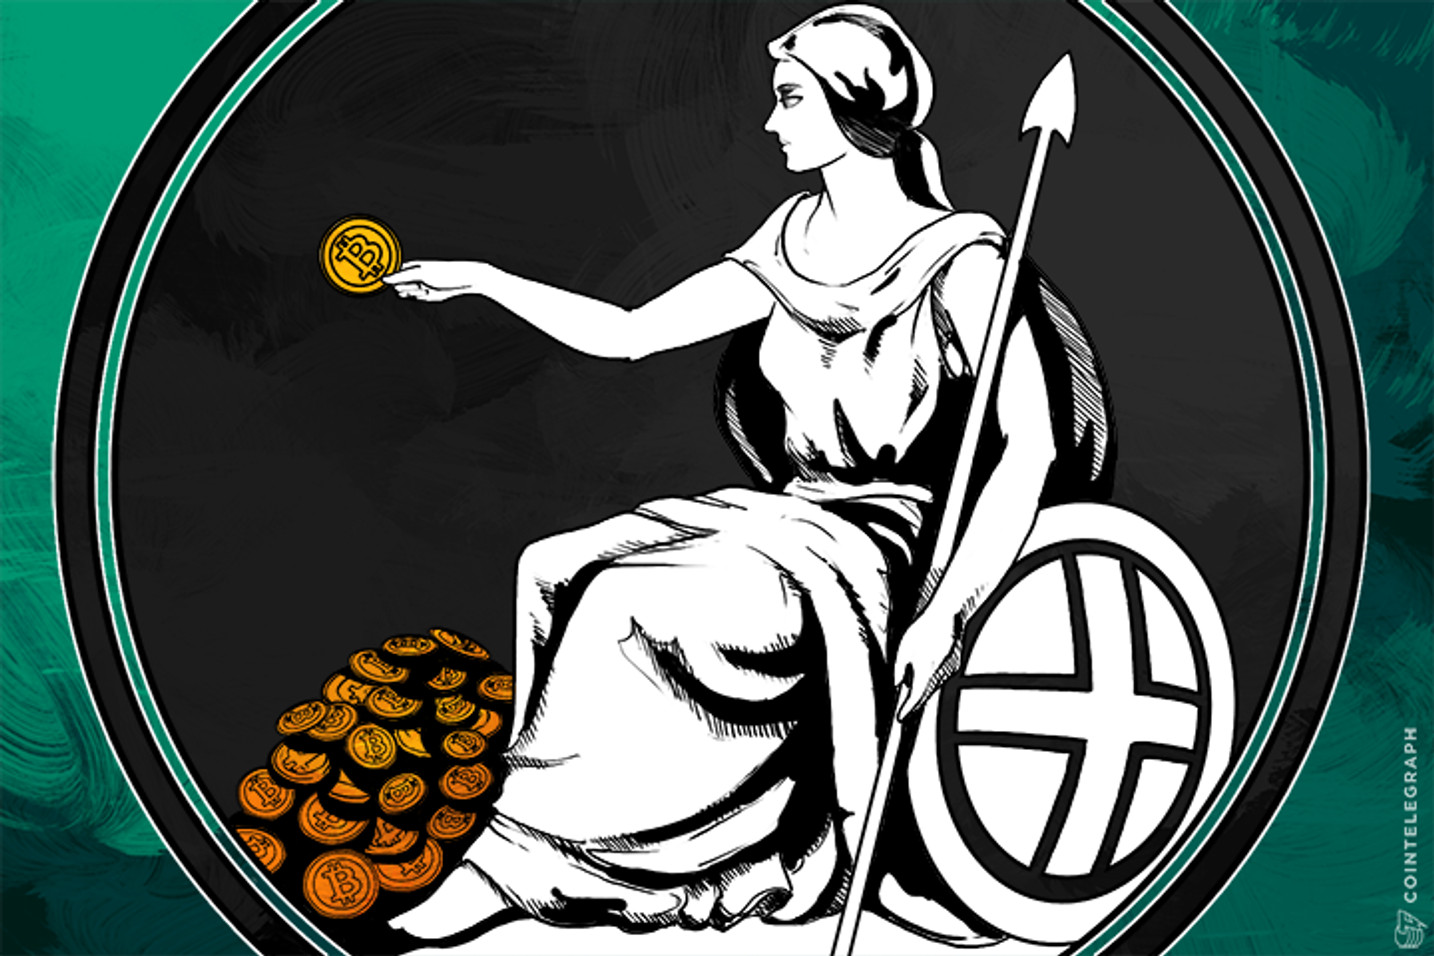 Bank of England Sees Future in Bitcoin, Sharia and 'Considerable Promise' of Blockchain